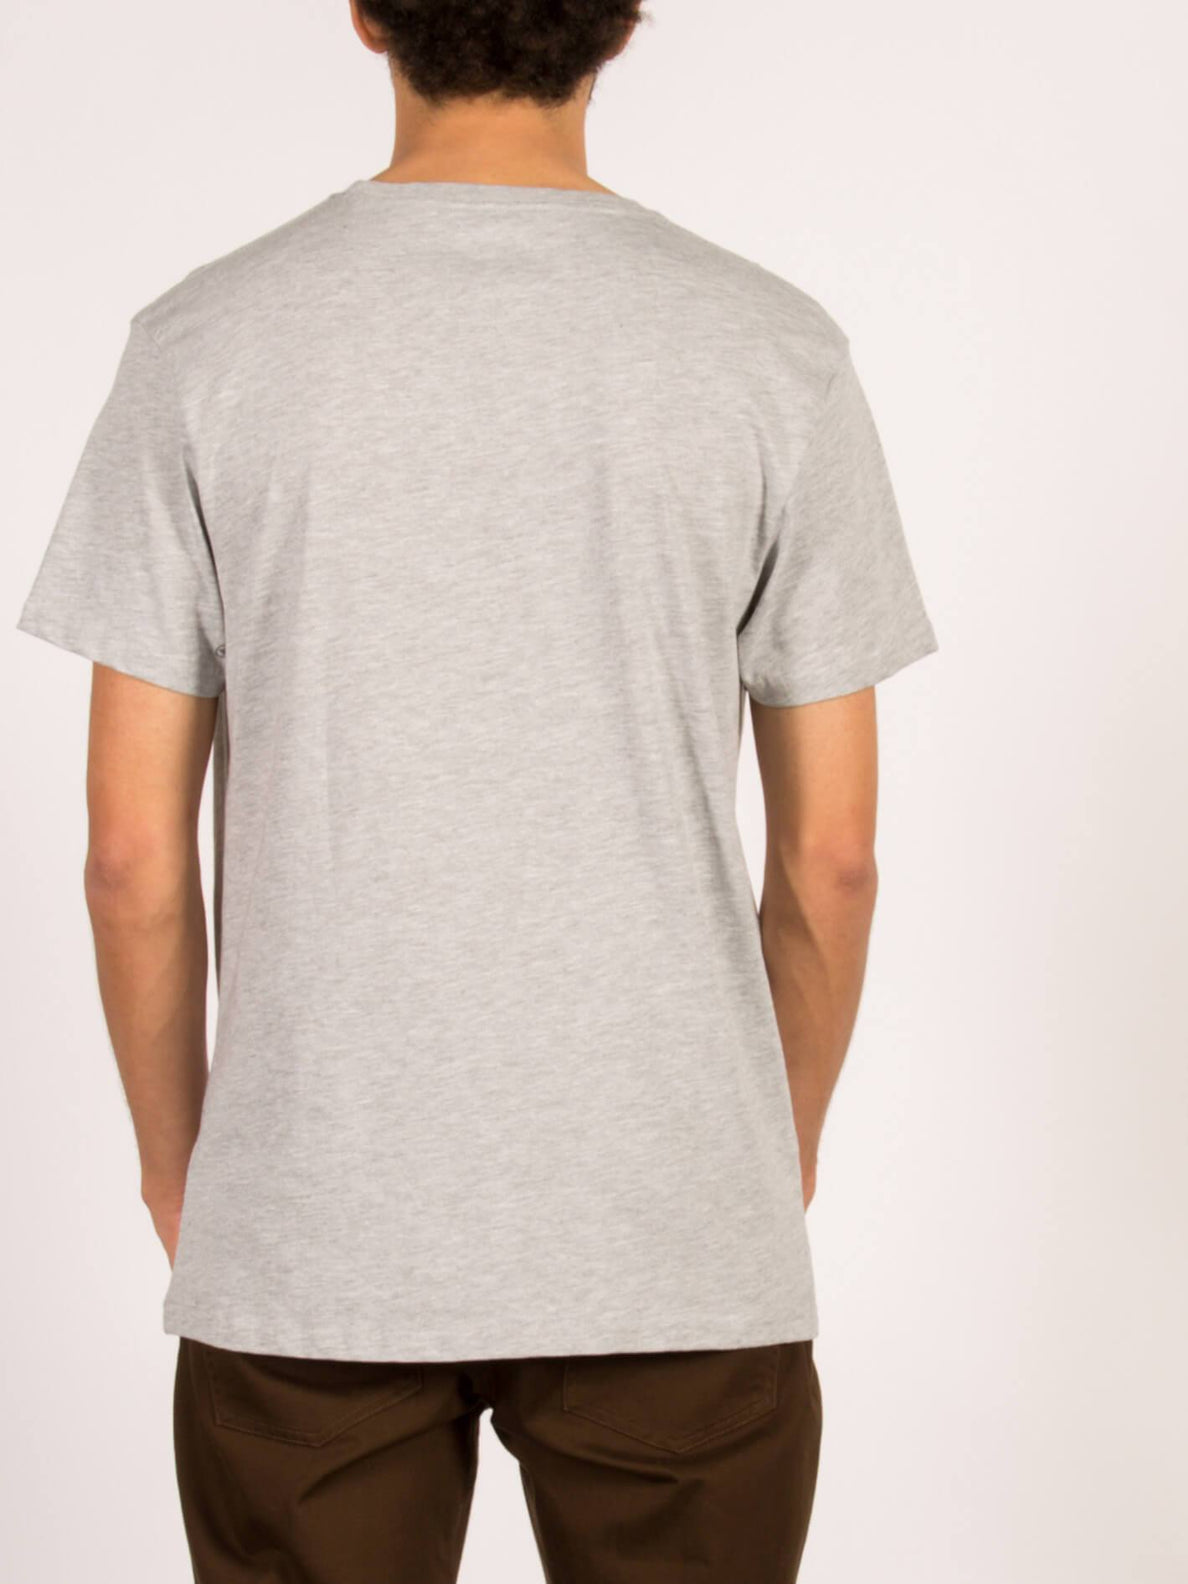 BURNT BSC SS HEATHER GREY